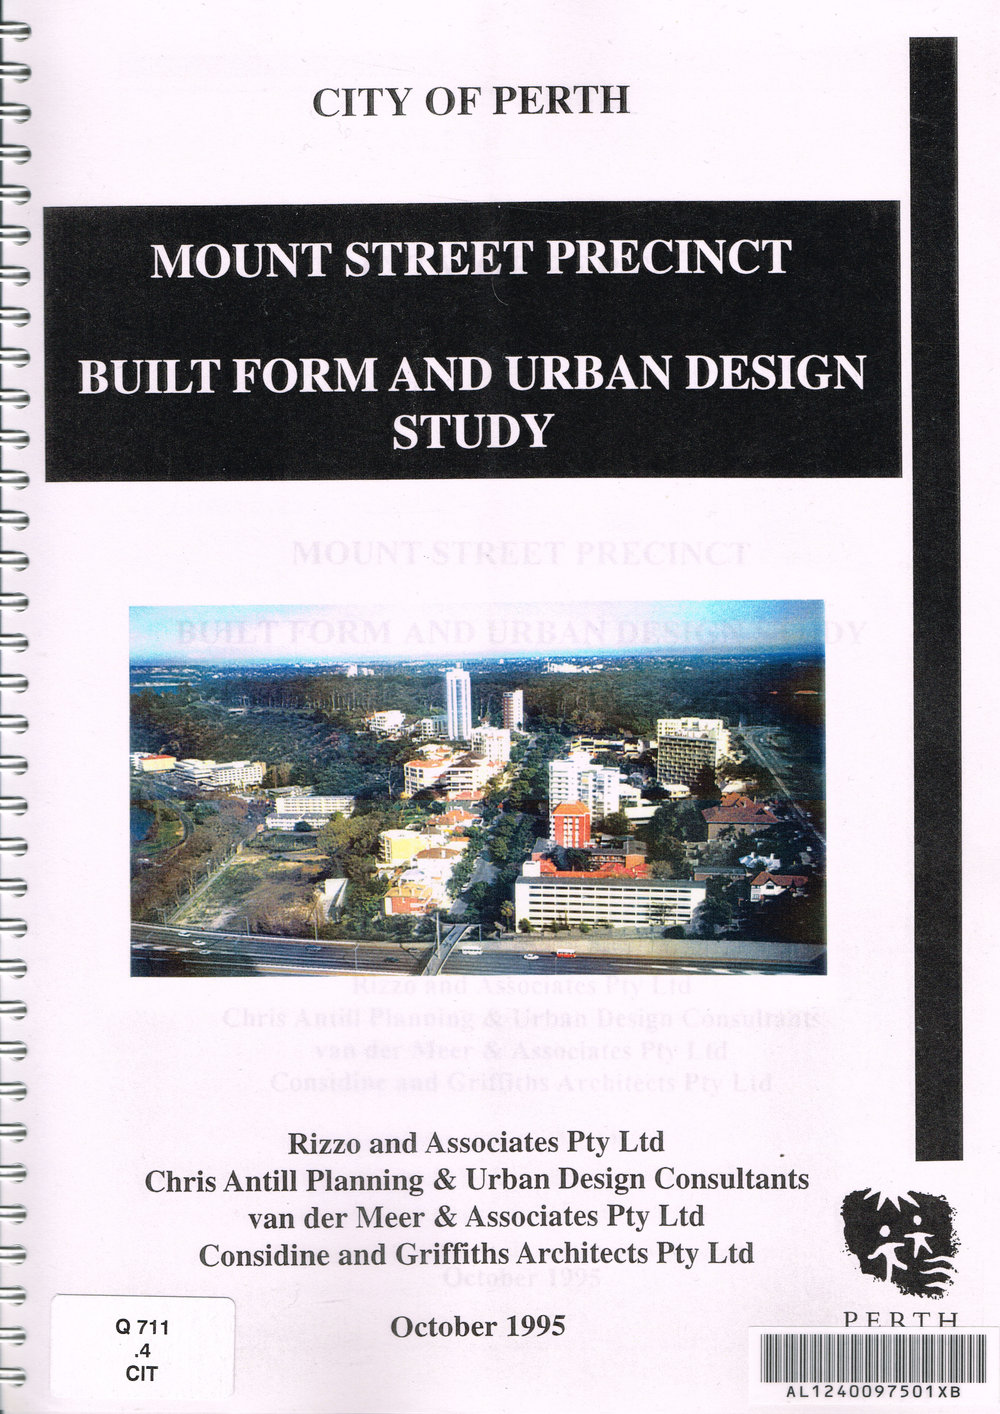 Mount Street Precinct : Built Form and Urban Design Study   Rizzo and Associates Pty. Ltd. ... [et al.]